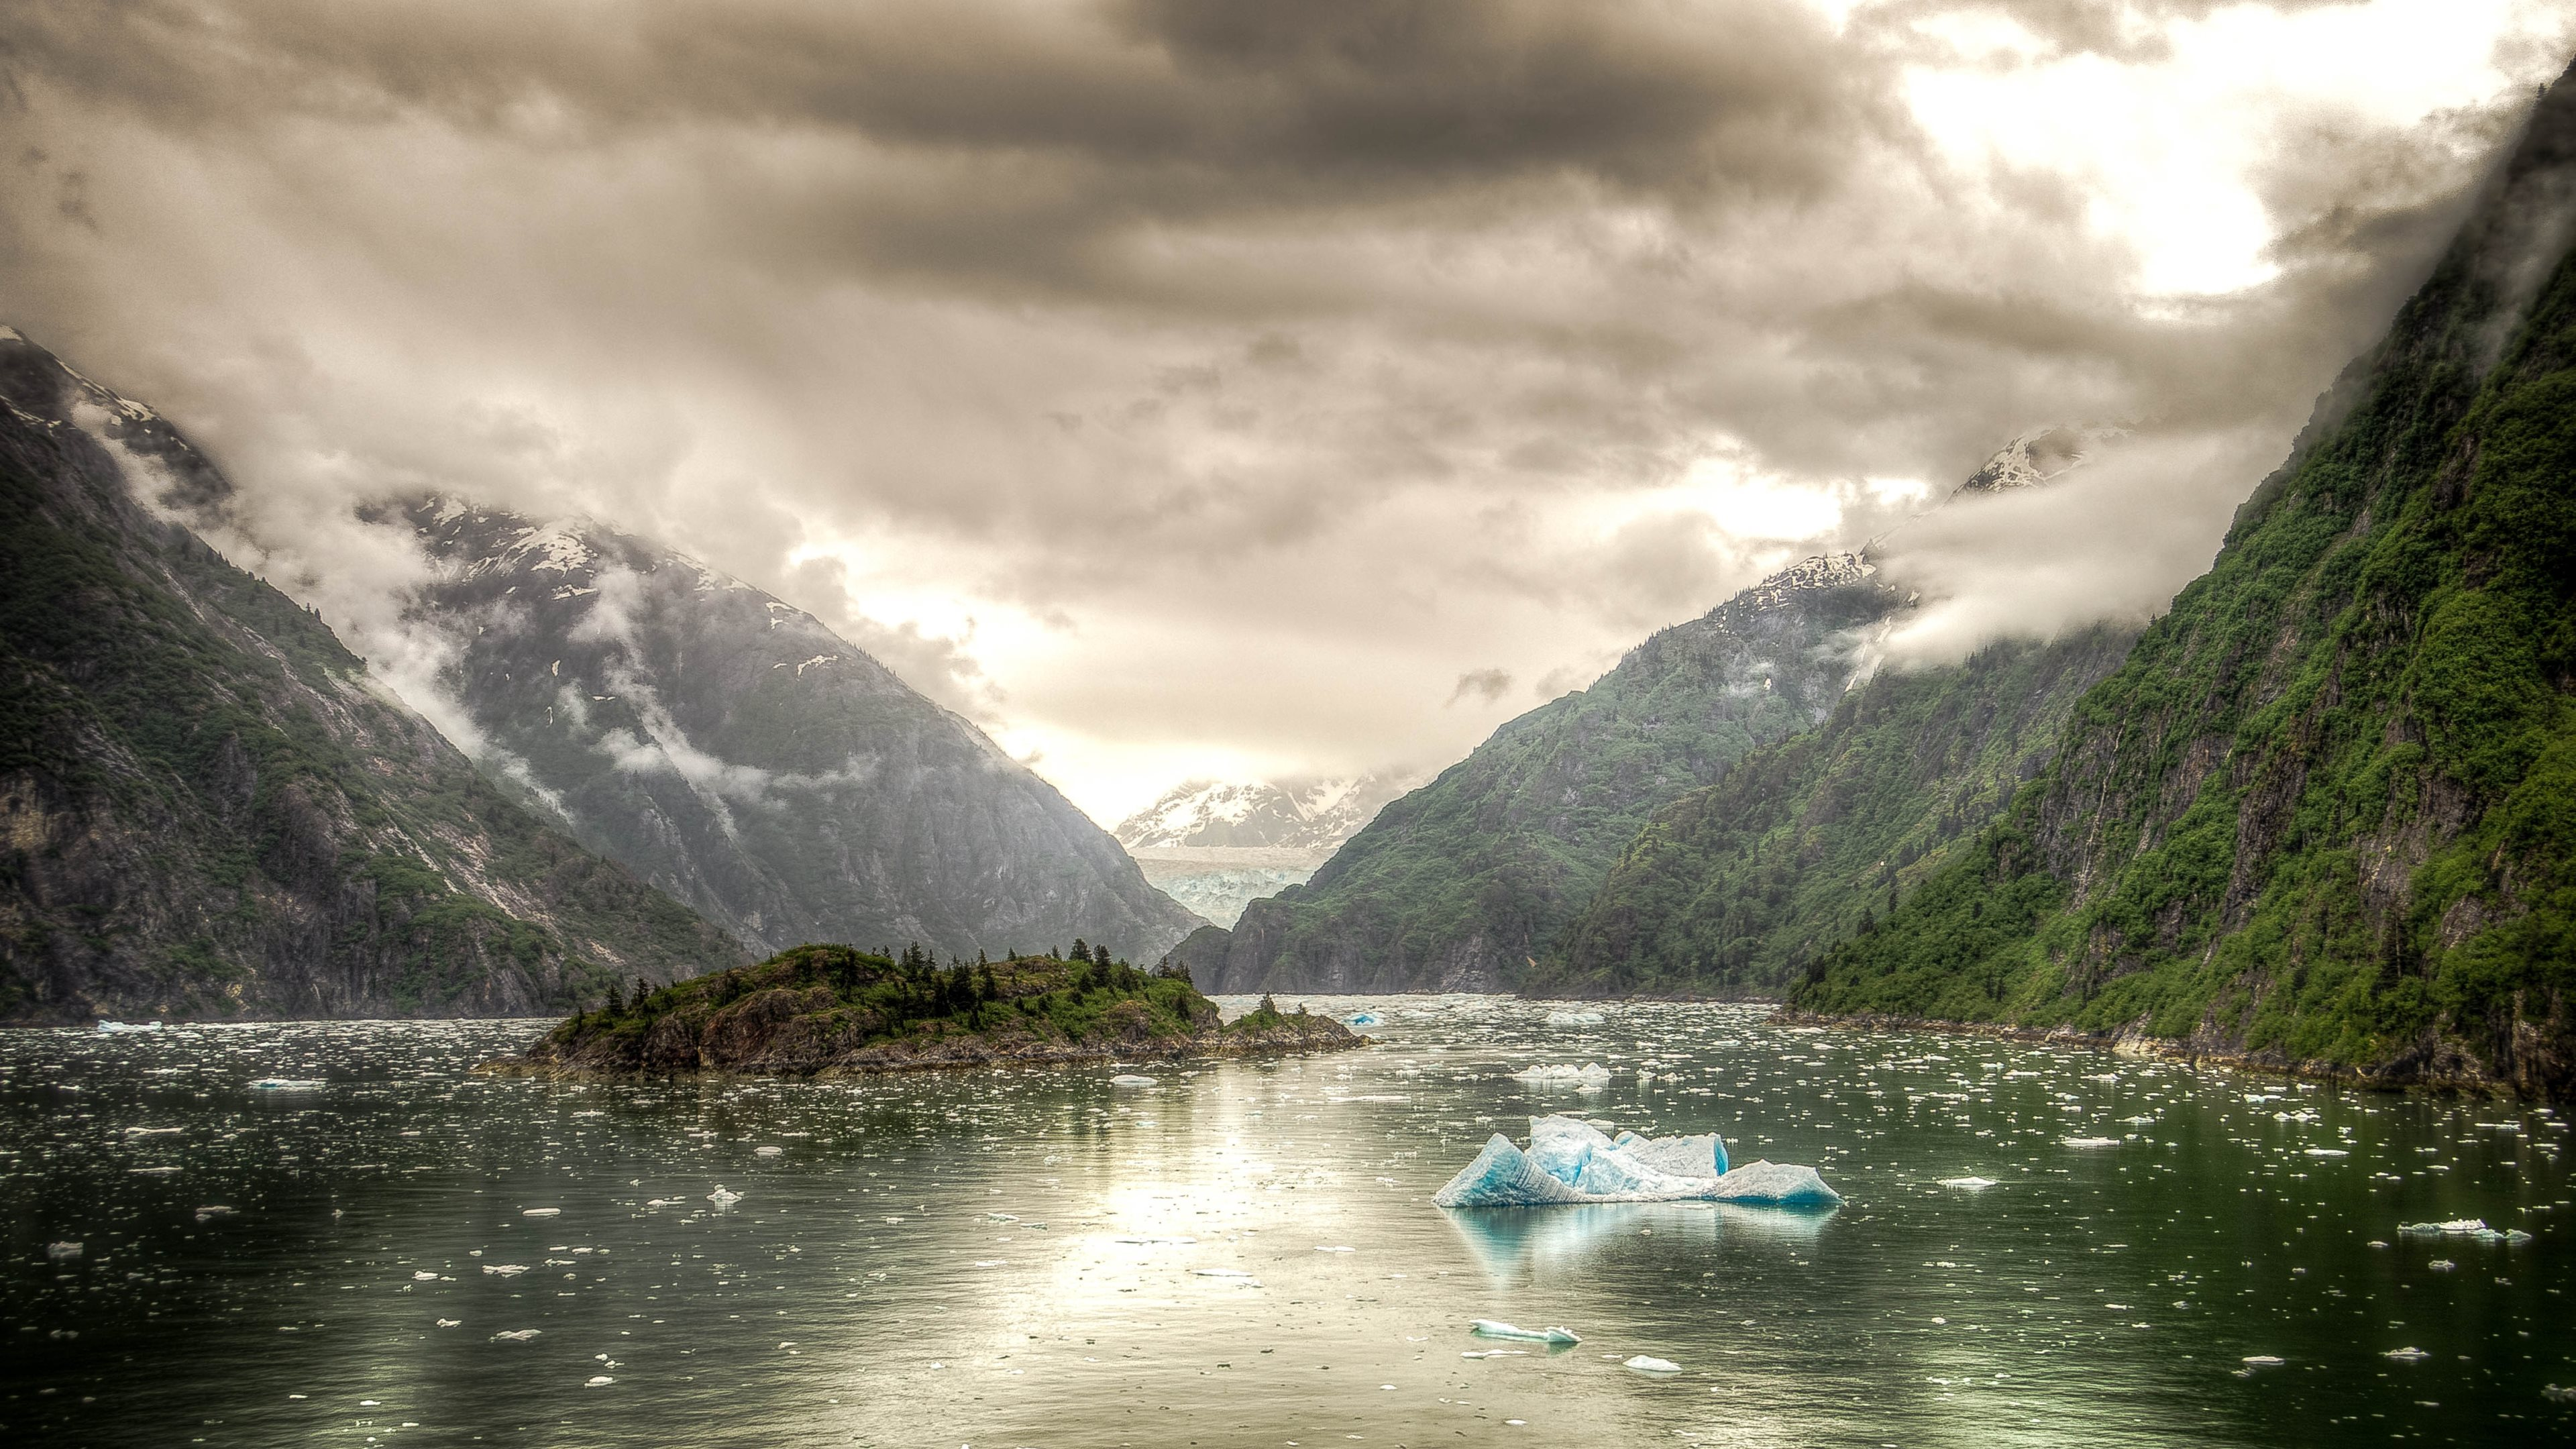 4K scenery with the Tracy Arm fjord from Alaska Nature looks always 3840x2160